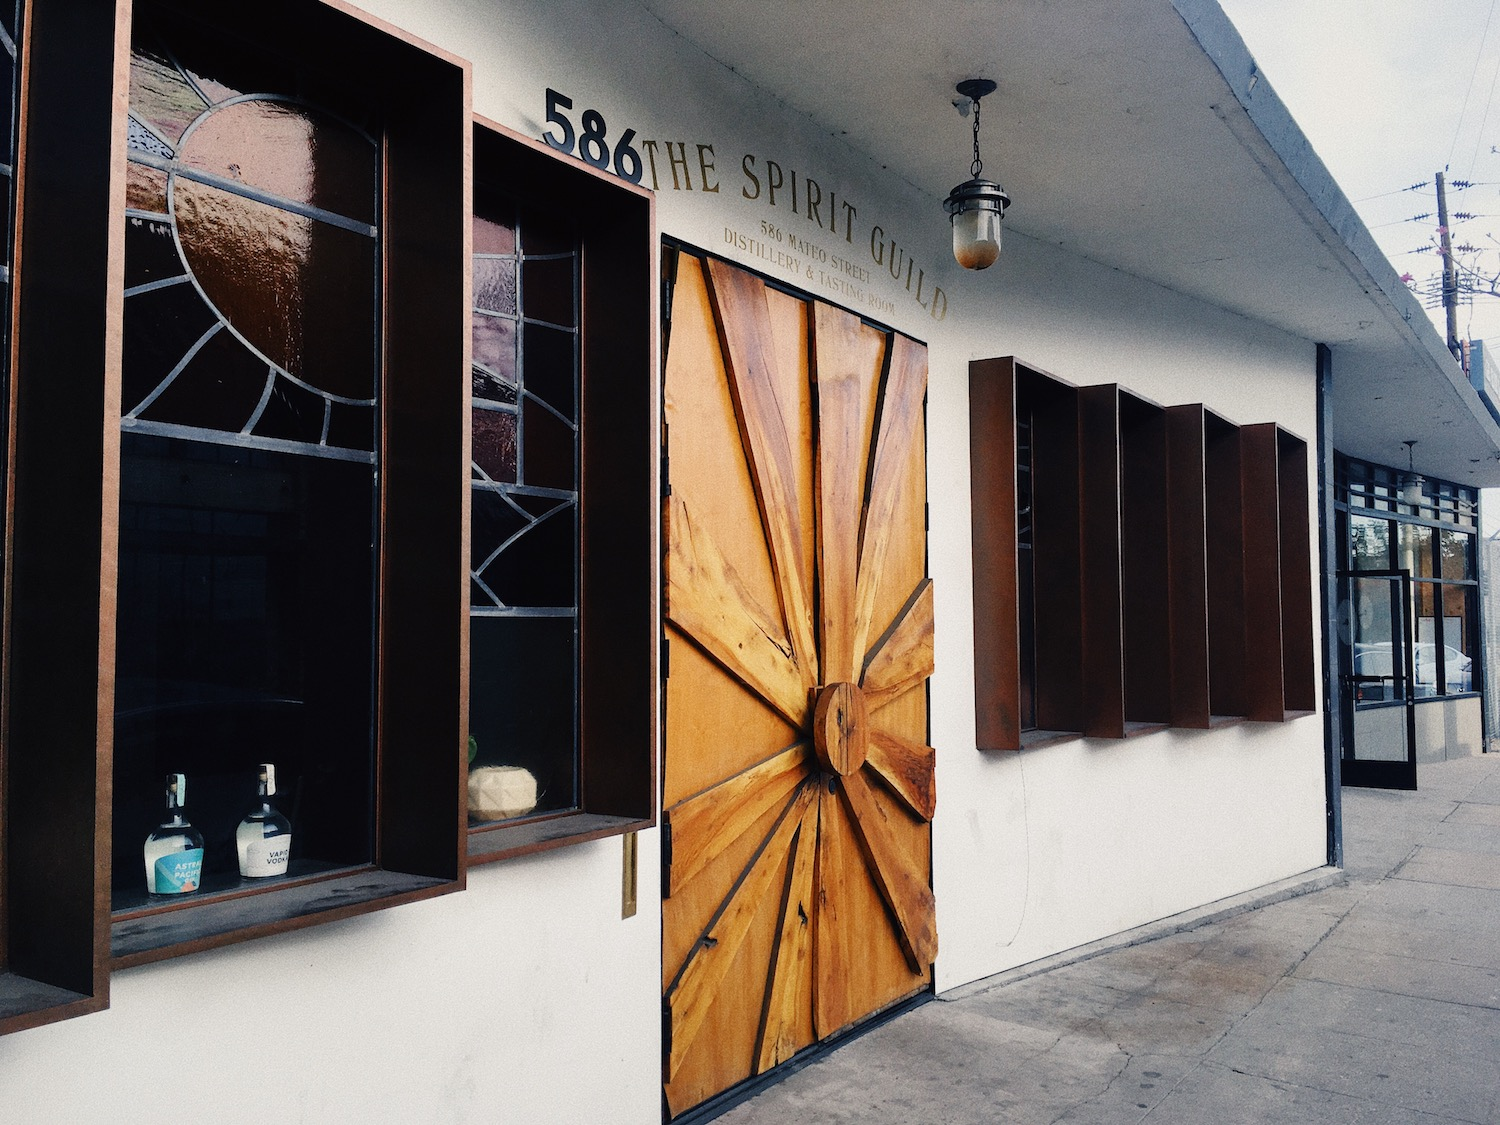 The funky entrance to the Spirit Guild distillery and tasting room.